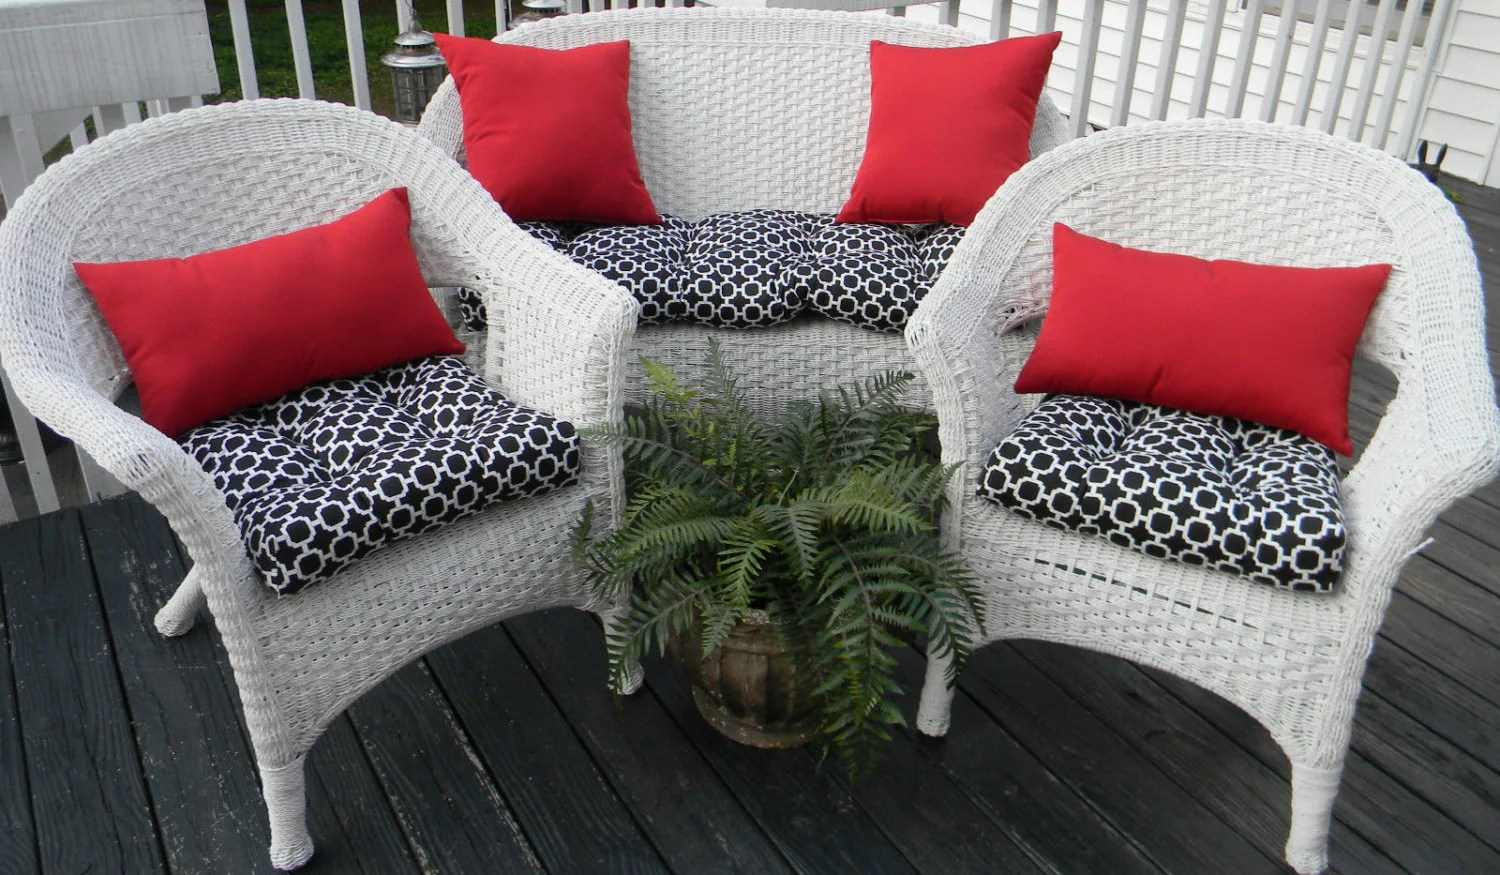 Outdoor Wicker Cushion And Pillow 7 Pc. Set Black & White